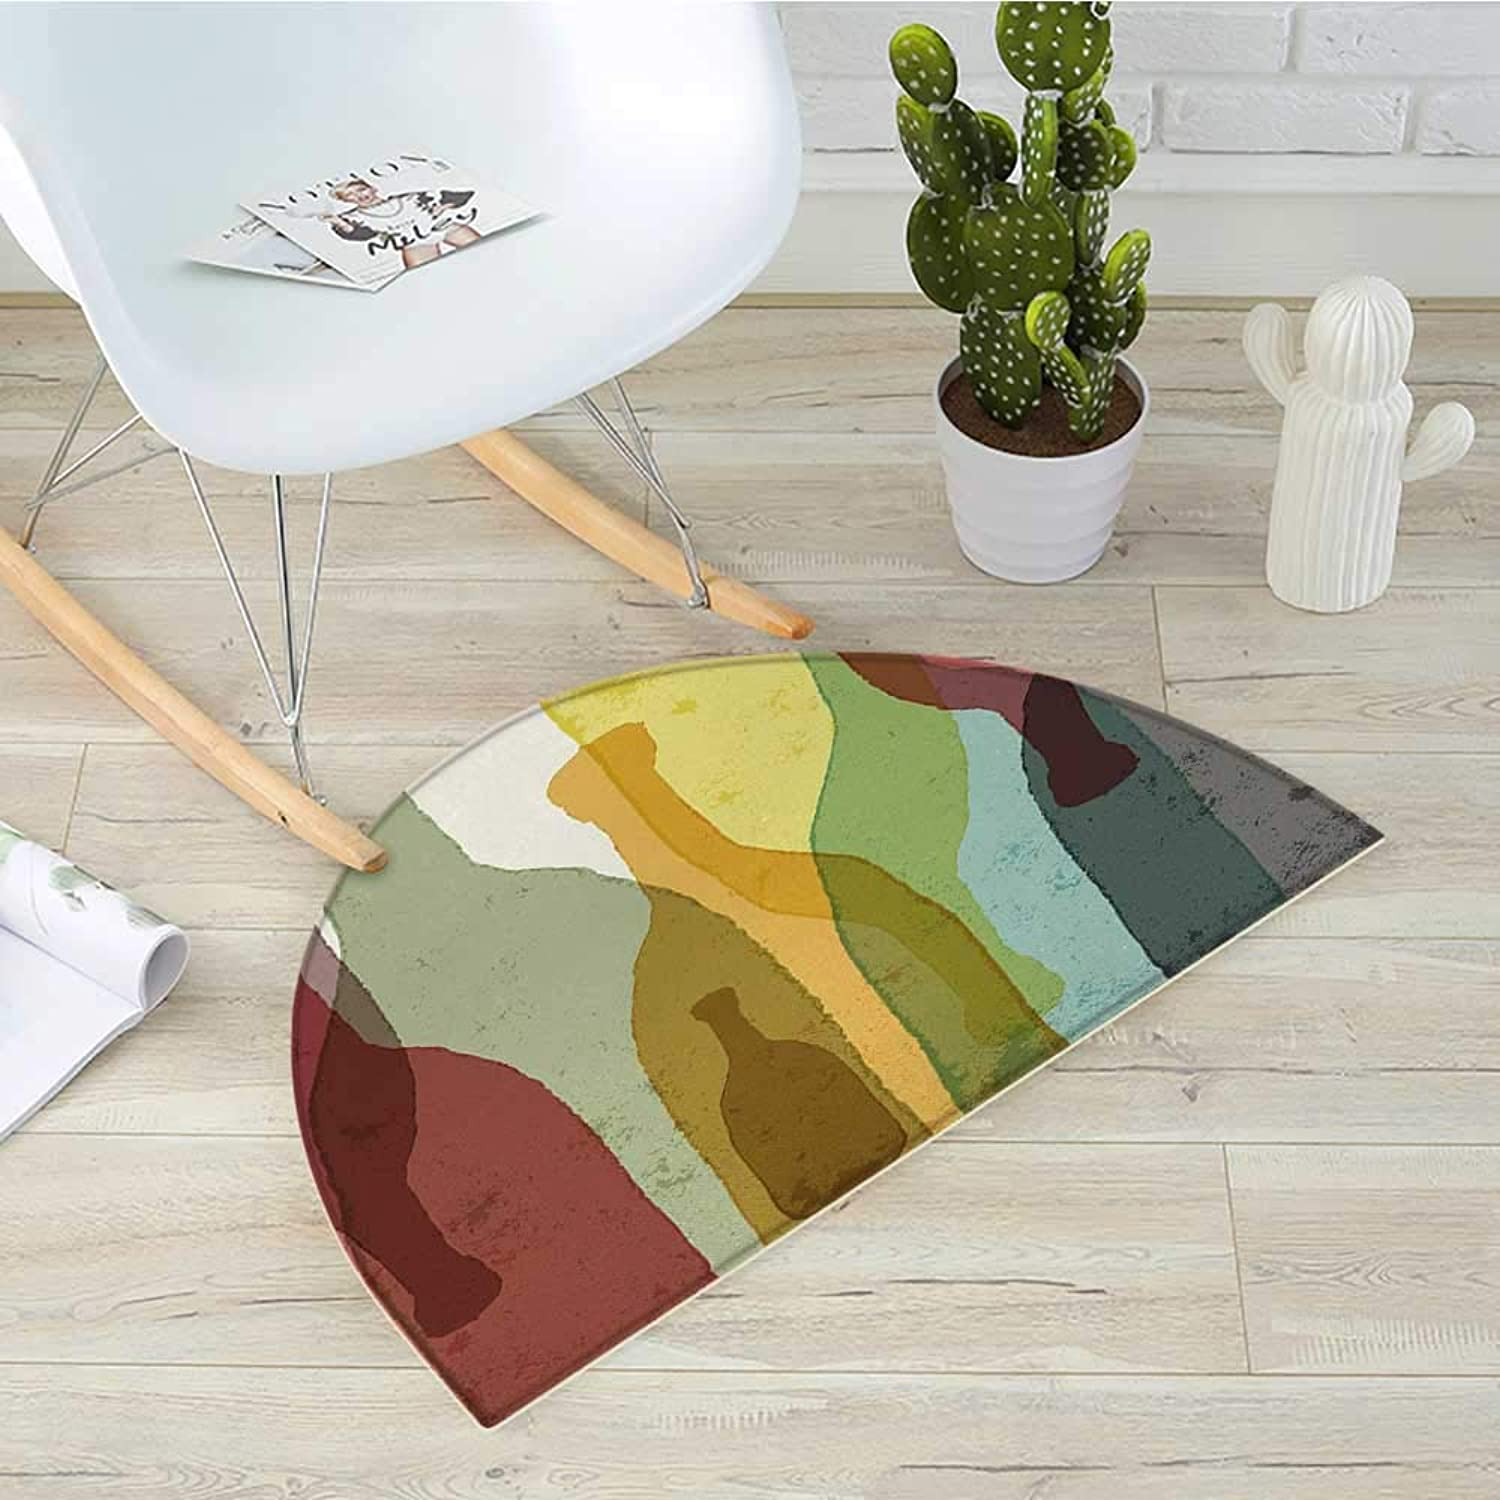 Wine Semicircular CushionAbstract Composition with Watercolor Silhouettes Bottles of Wine Whiskey Tequila Vodka Entry Door Mat H 19.7  xD 31.5  Multicolor